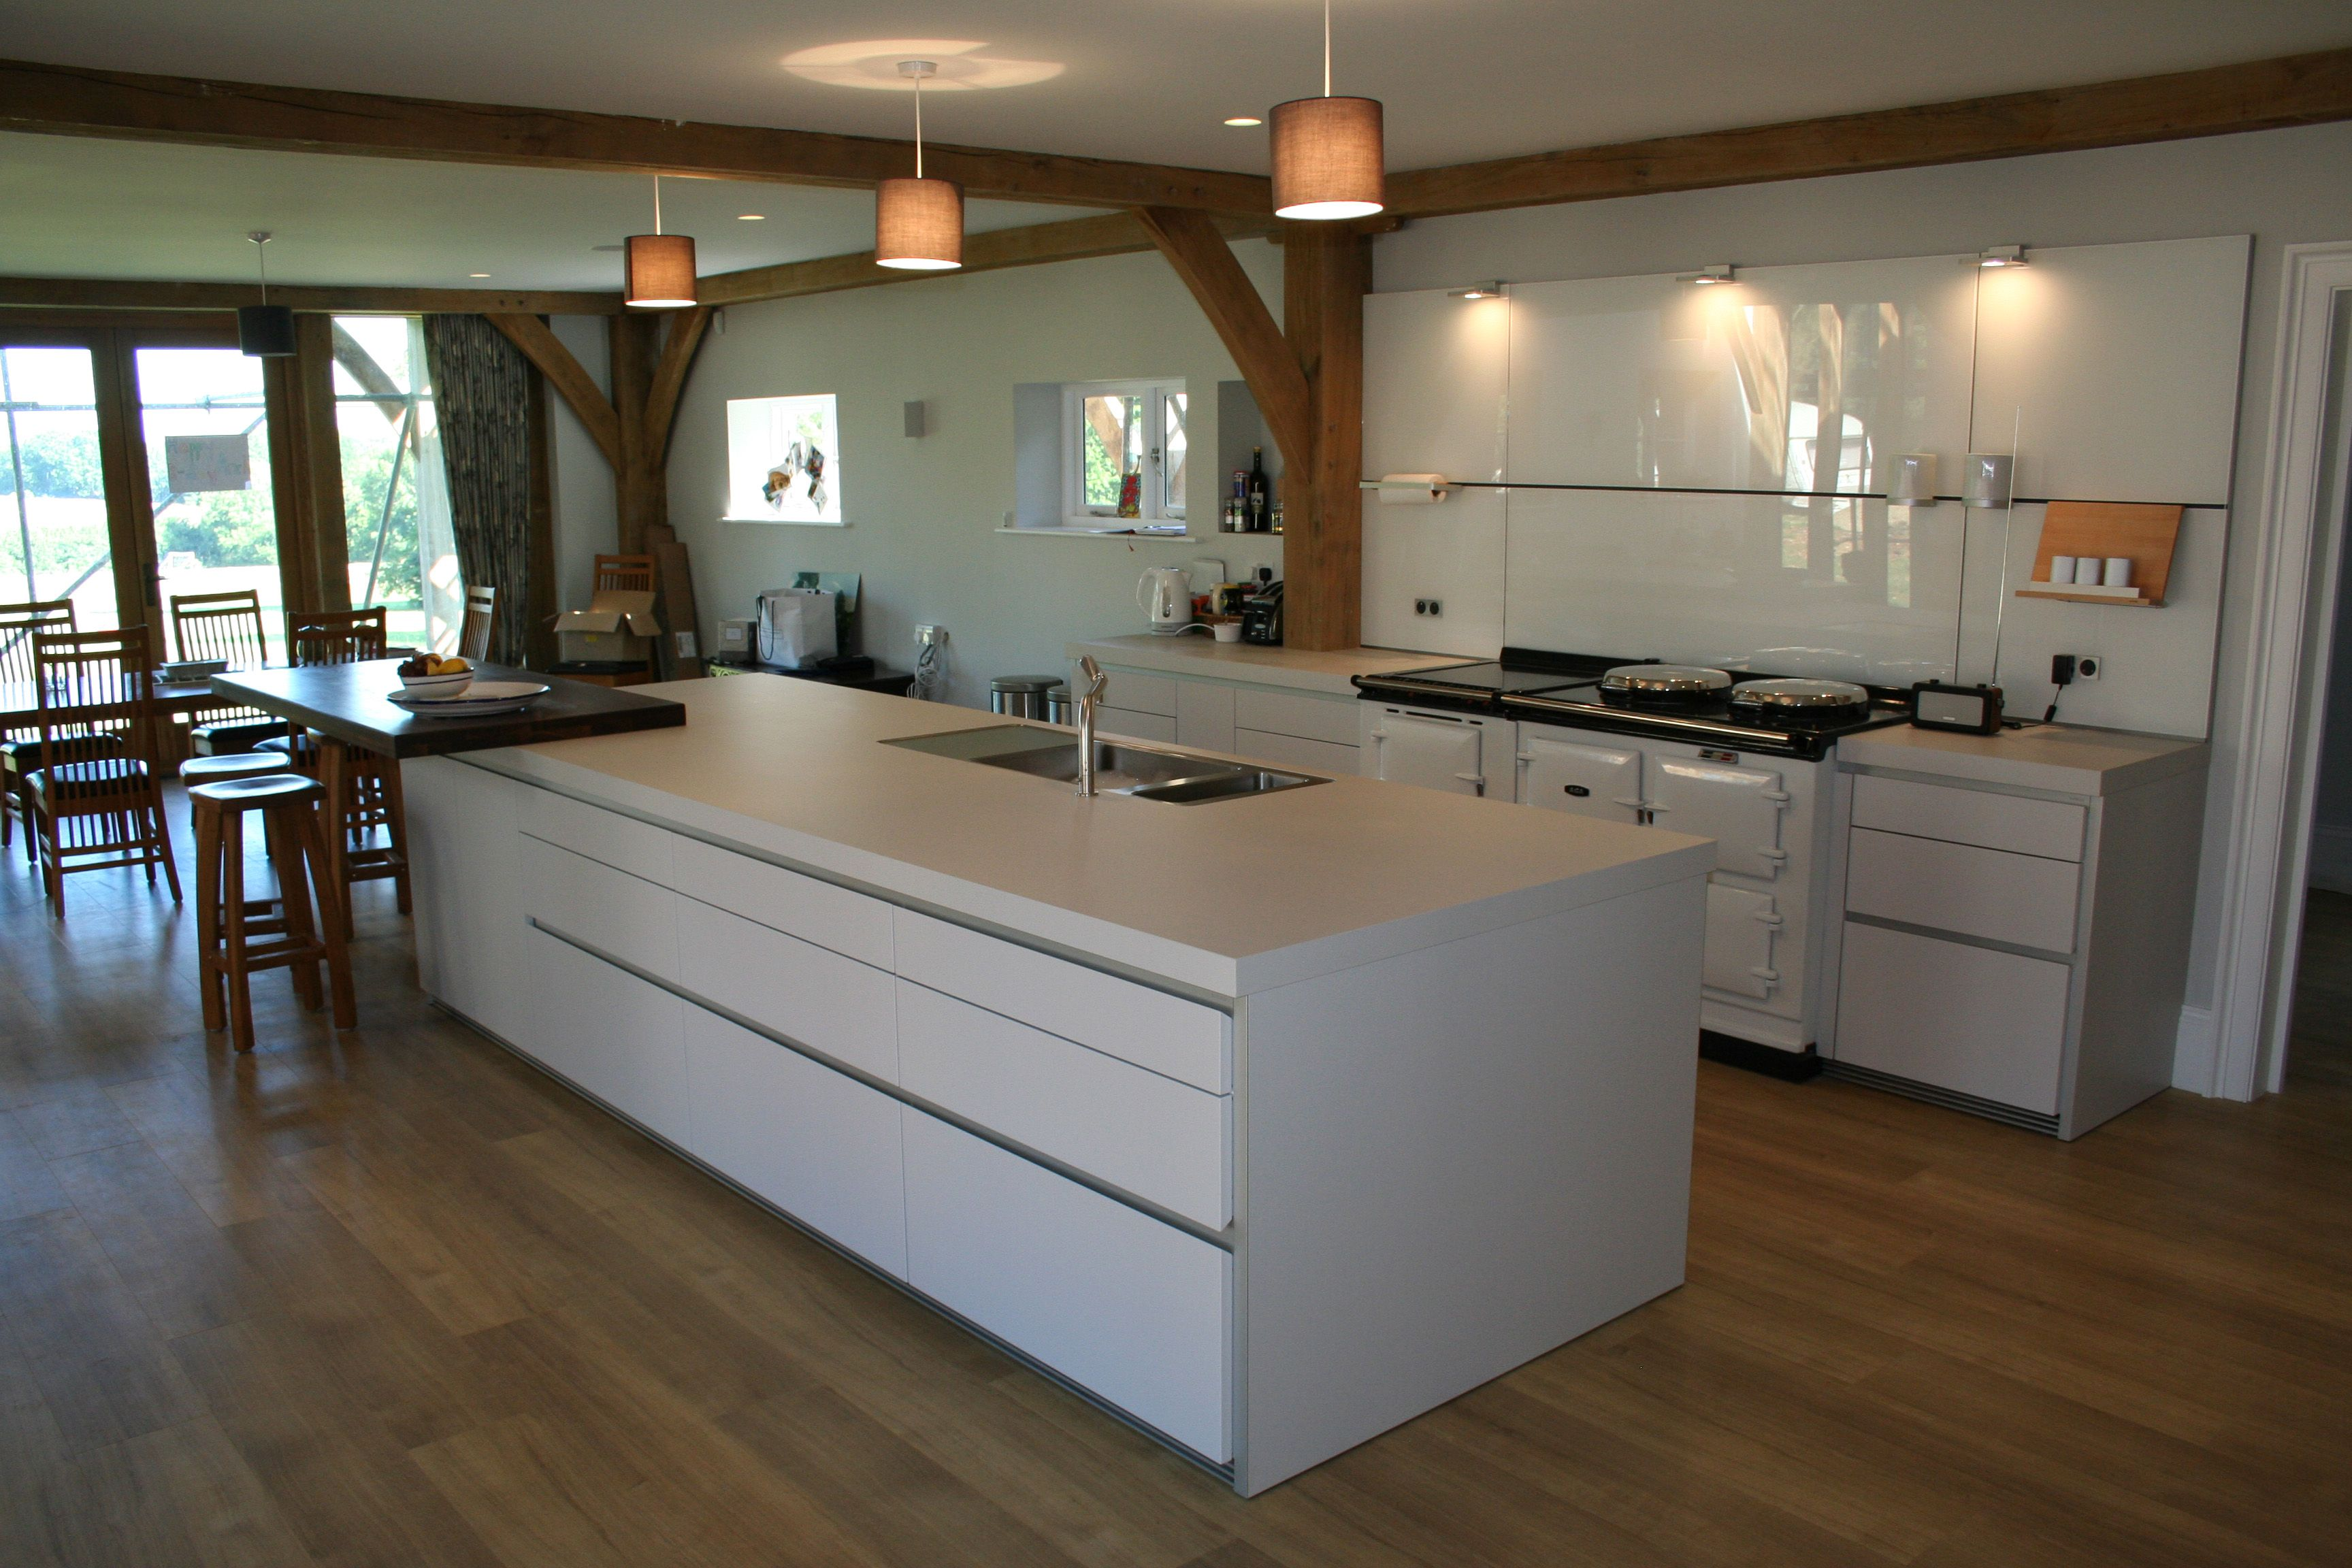 Do You Need A Kitchen Designer: Having An AGA Does Away With The Need For Ovens And Hobs